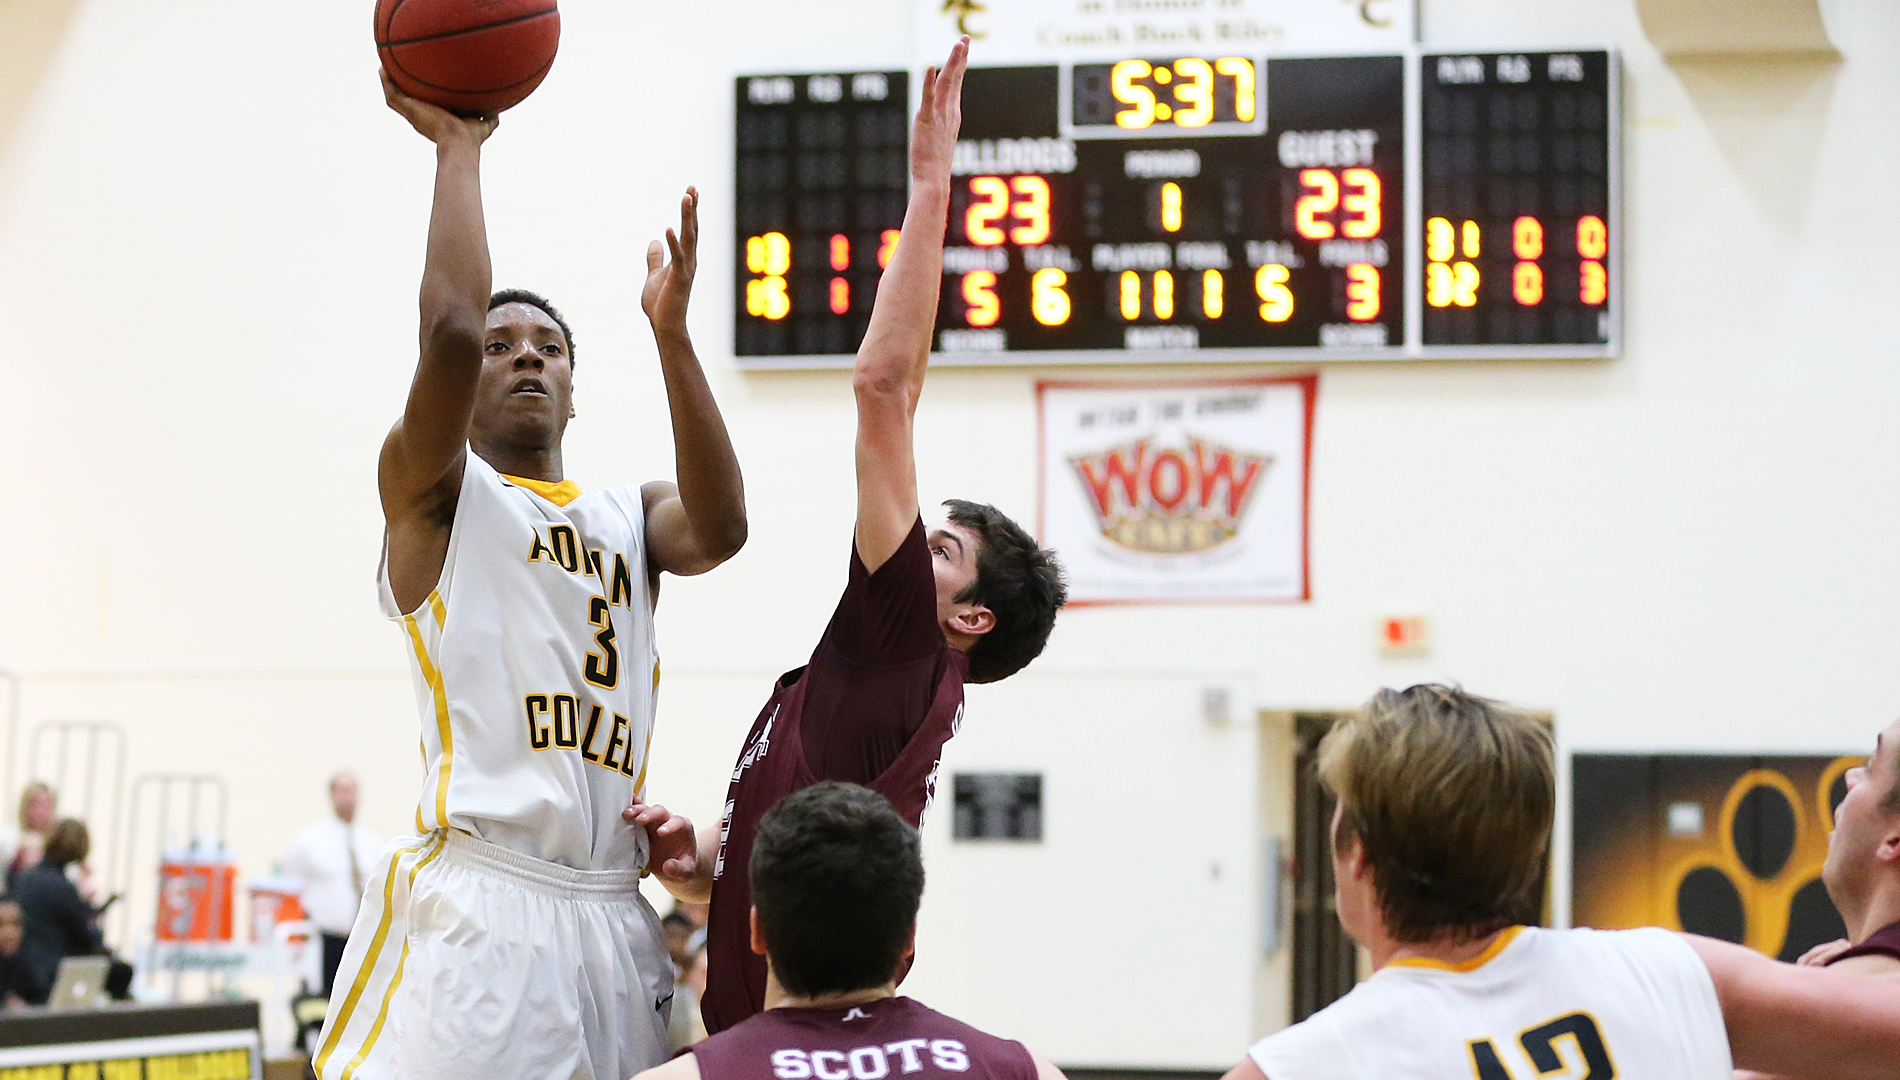 Harris Scores Second Most Points in a Single Game in 79-76 Loss in MIAA Home-Opener